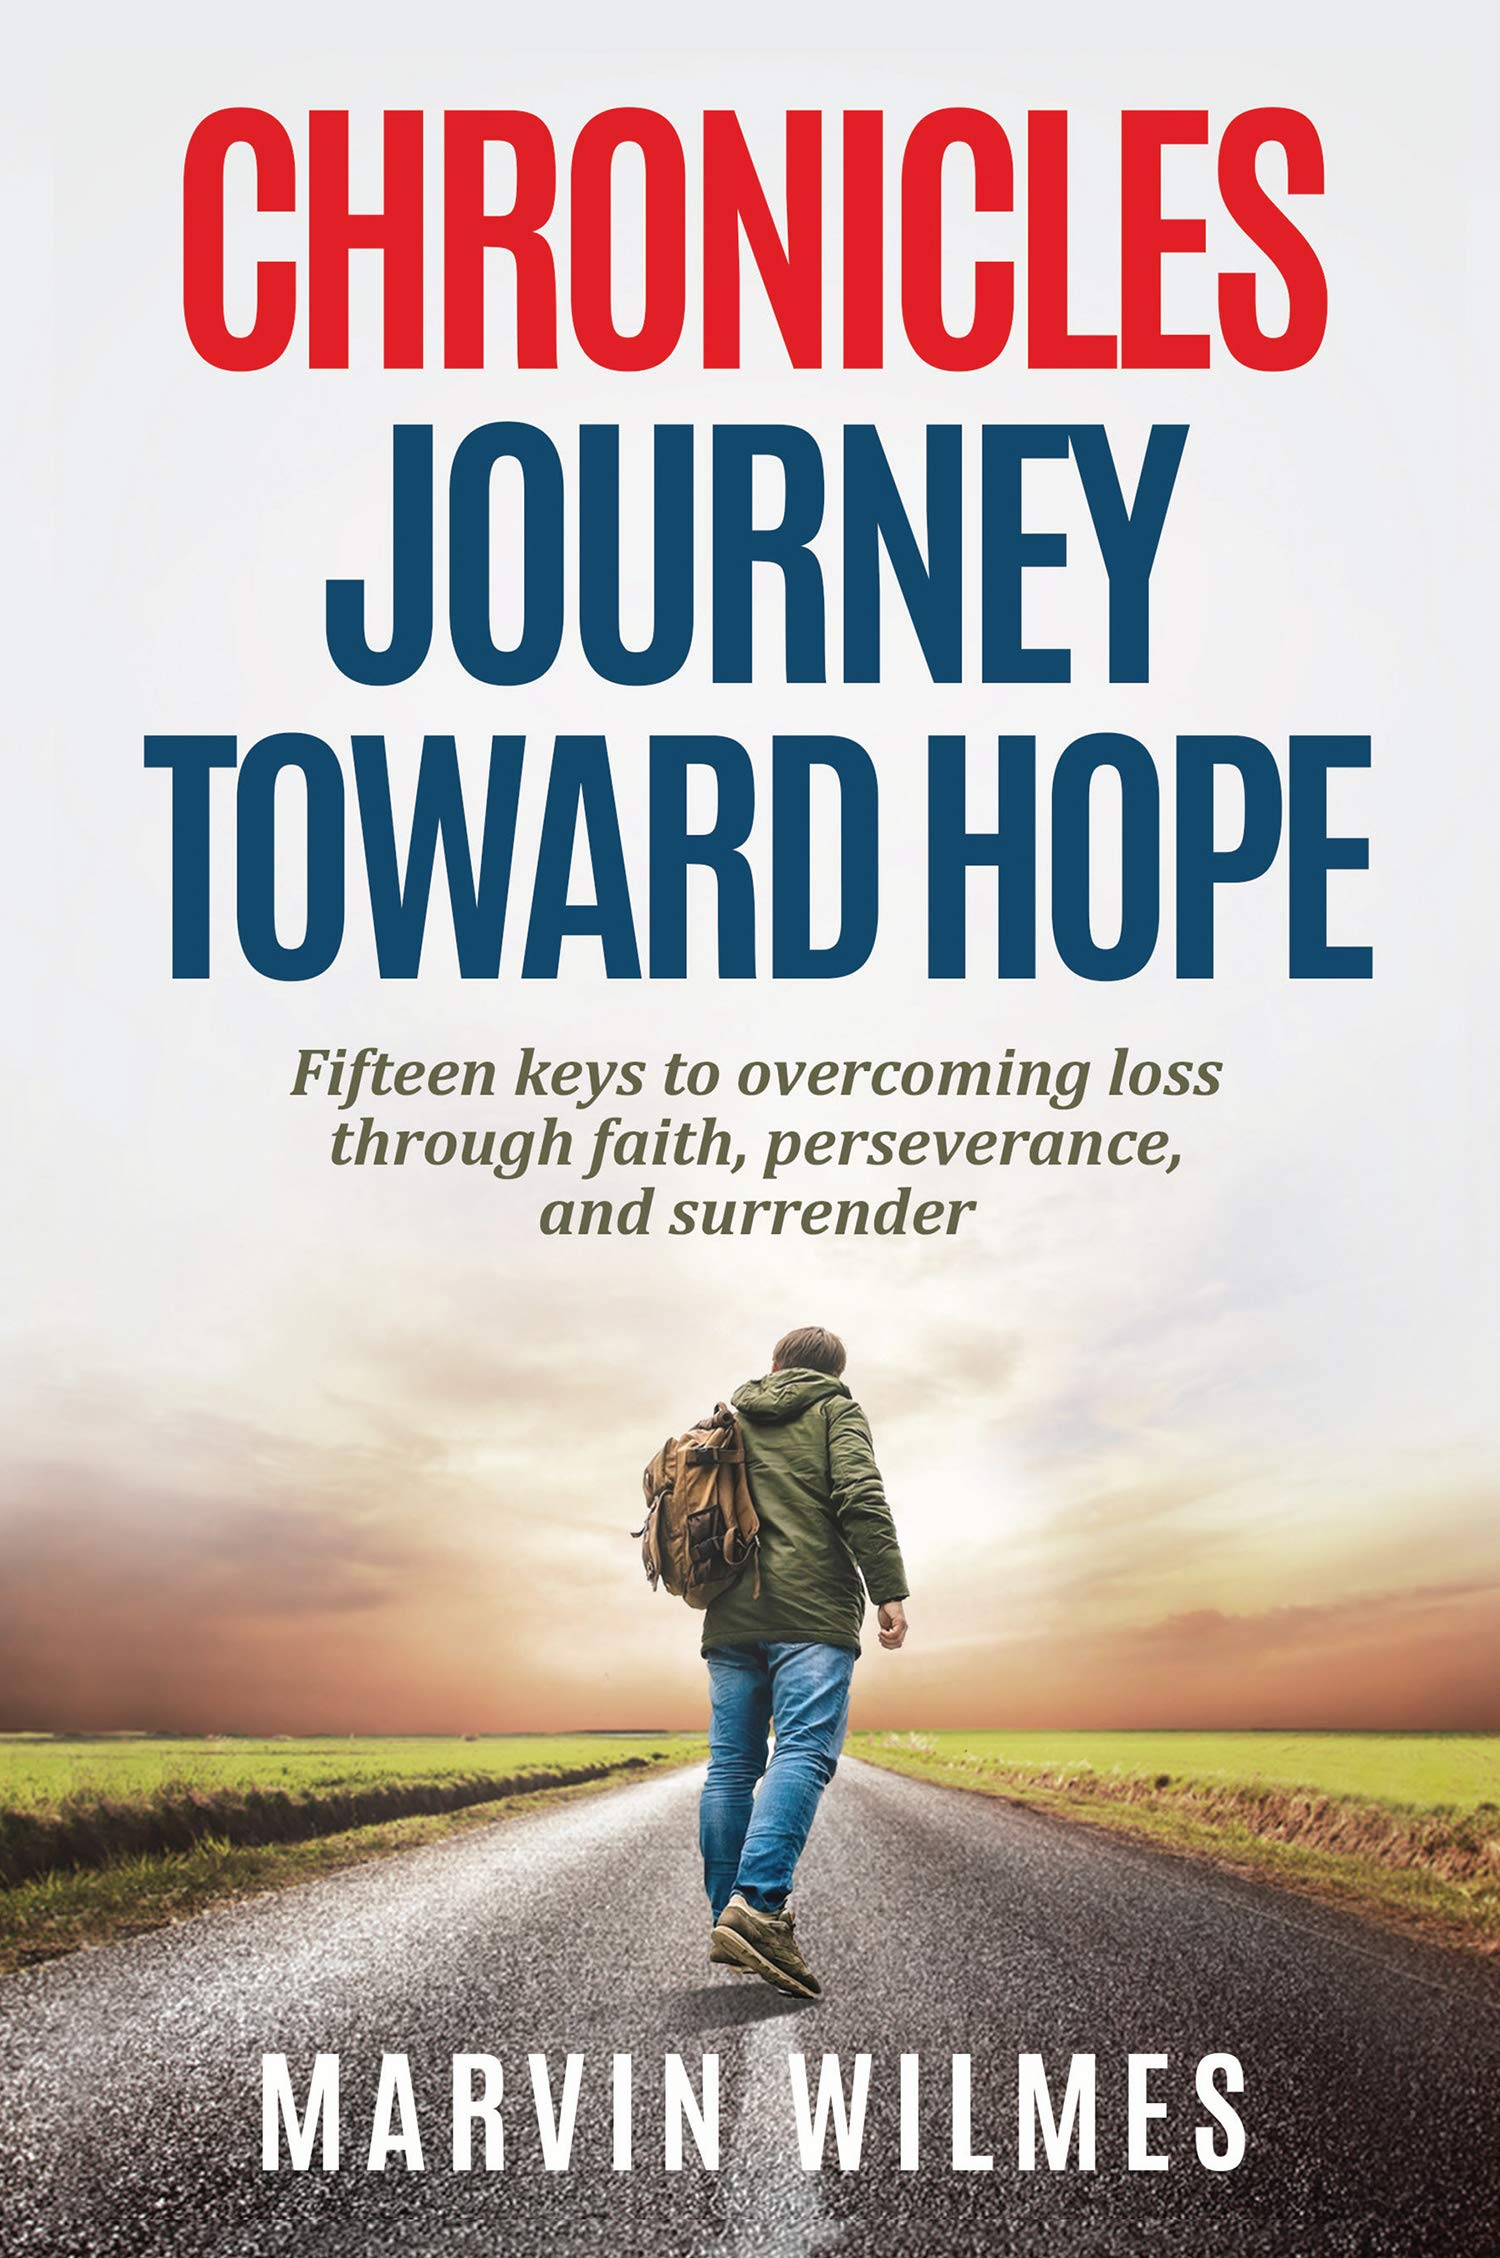 Chronicles, Journey Toward Hope: Fifteen keys to overcoming loss through faith, perseverance, and surrender